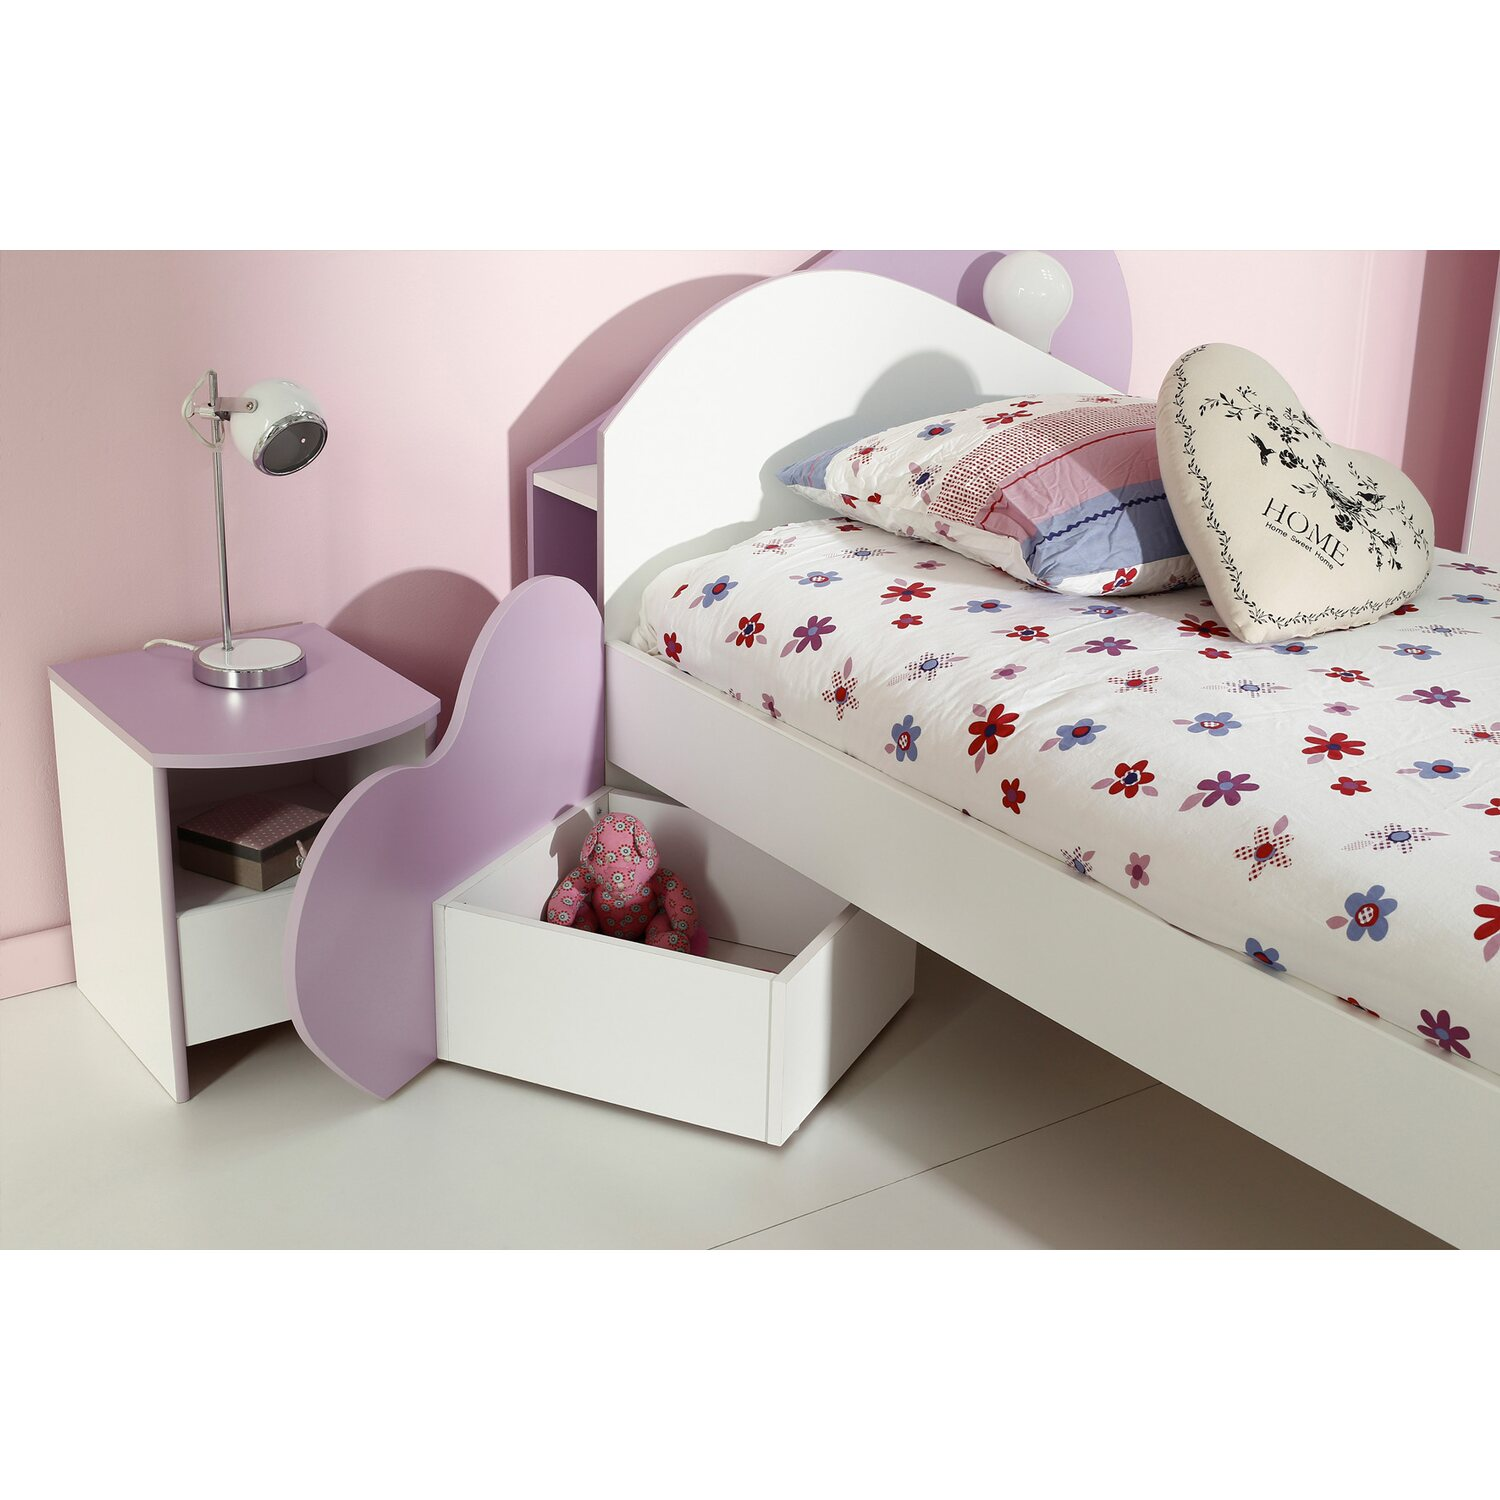 parisot kinderzimmer set 4 teilig mila iv wei lila kaufen bei obi. Black Bedroom Furniture Sets. Home Design Ideas